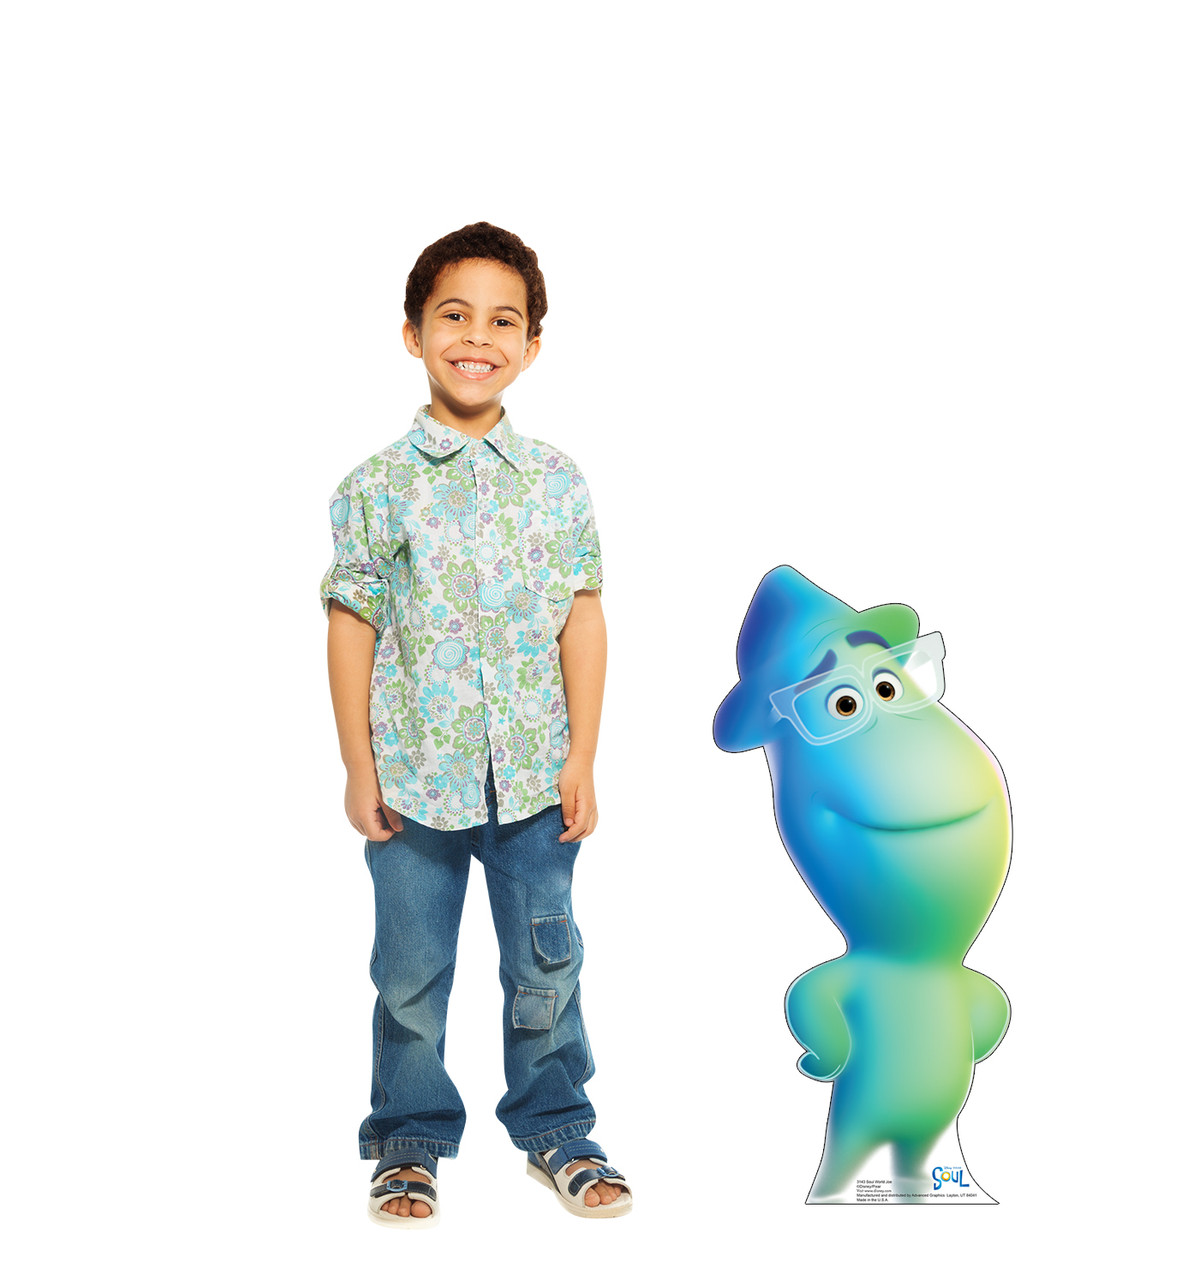 Life-size cardboard standee of Soul World Joe from Disney's Movie Soul with model.